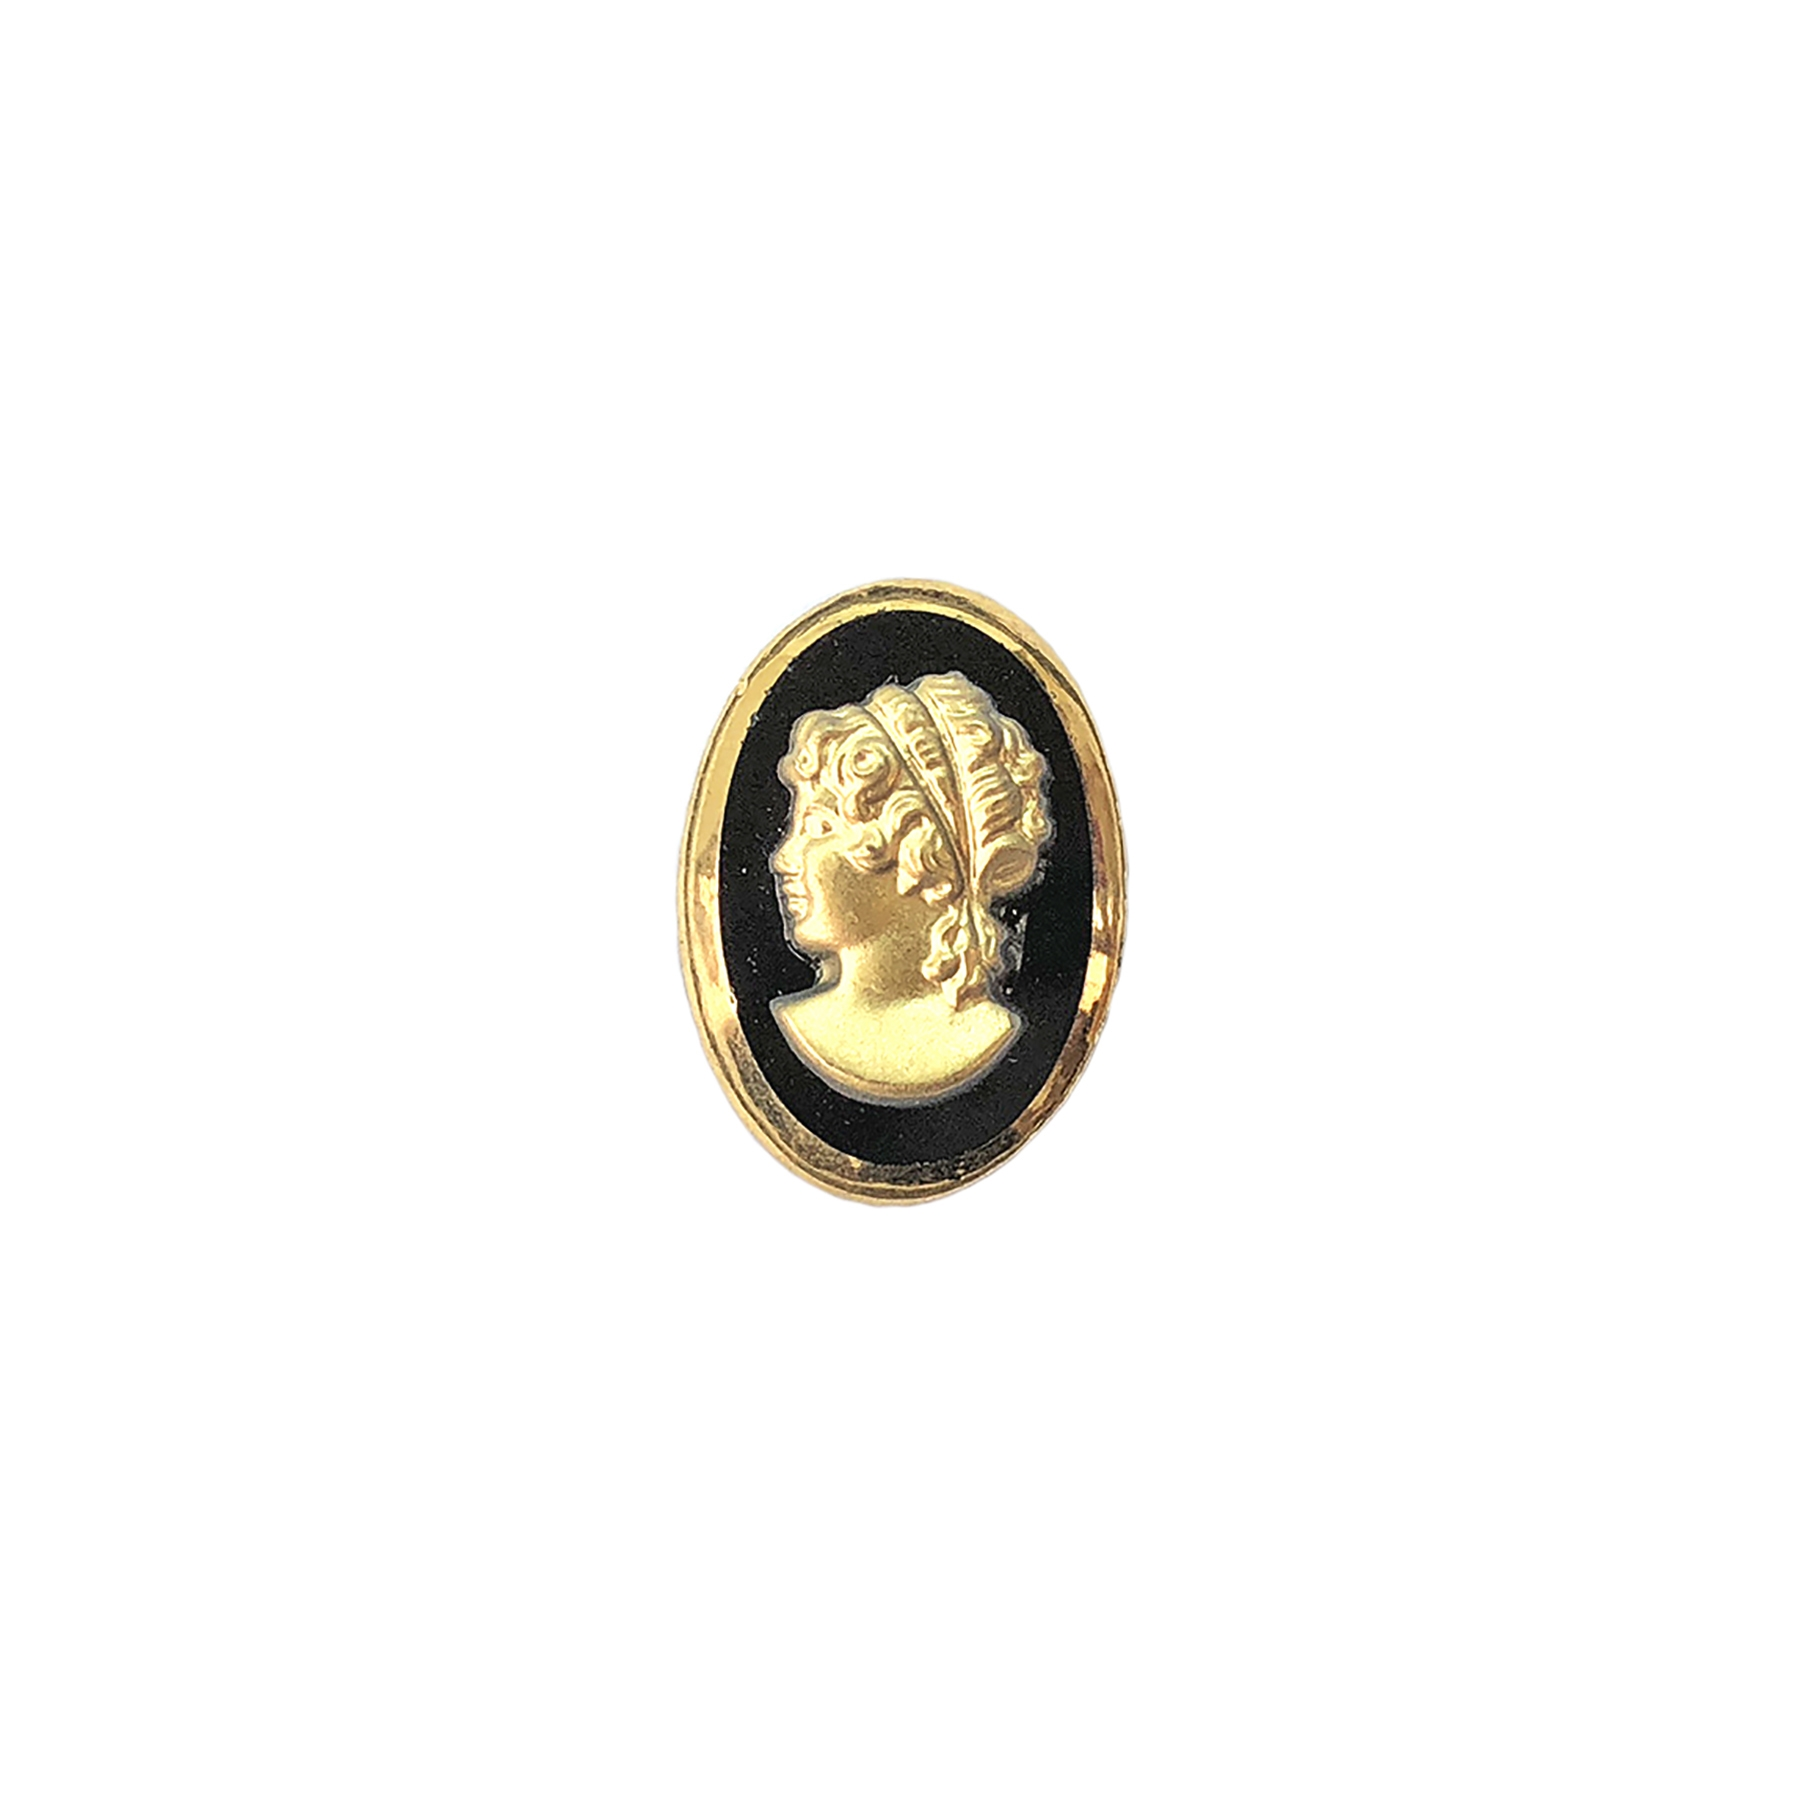 vintage glass cameo, German, jet gold, cameo, jet, gold, lady cameo, glass stone, vintage, 18x13mm, German made, B'sue Boutiques, jewelry making, cameo jewelry, vintage supplies, jewelry supplies, glass cameo, gold, jet black, oval cameo, 08796